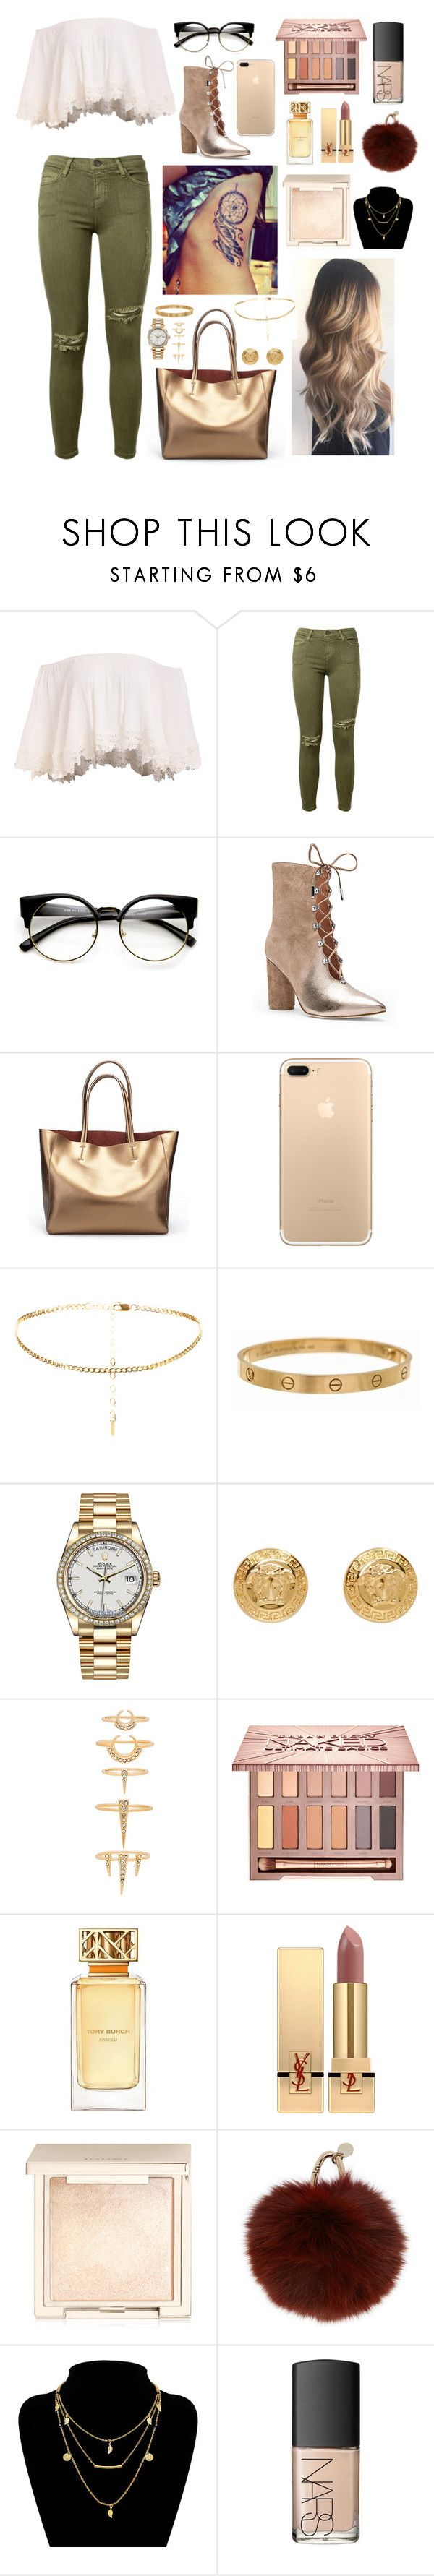 """""""Untitled #35"""" by lara-is ❤ liked on Polyvore featuring Current/Elliott, ZeroUV, Sigerson Morrison, Cartier, Rolex, Versace, Luv Aj, Urban Decay, Tory Burch and Yves Saint Laurent"""